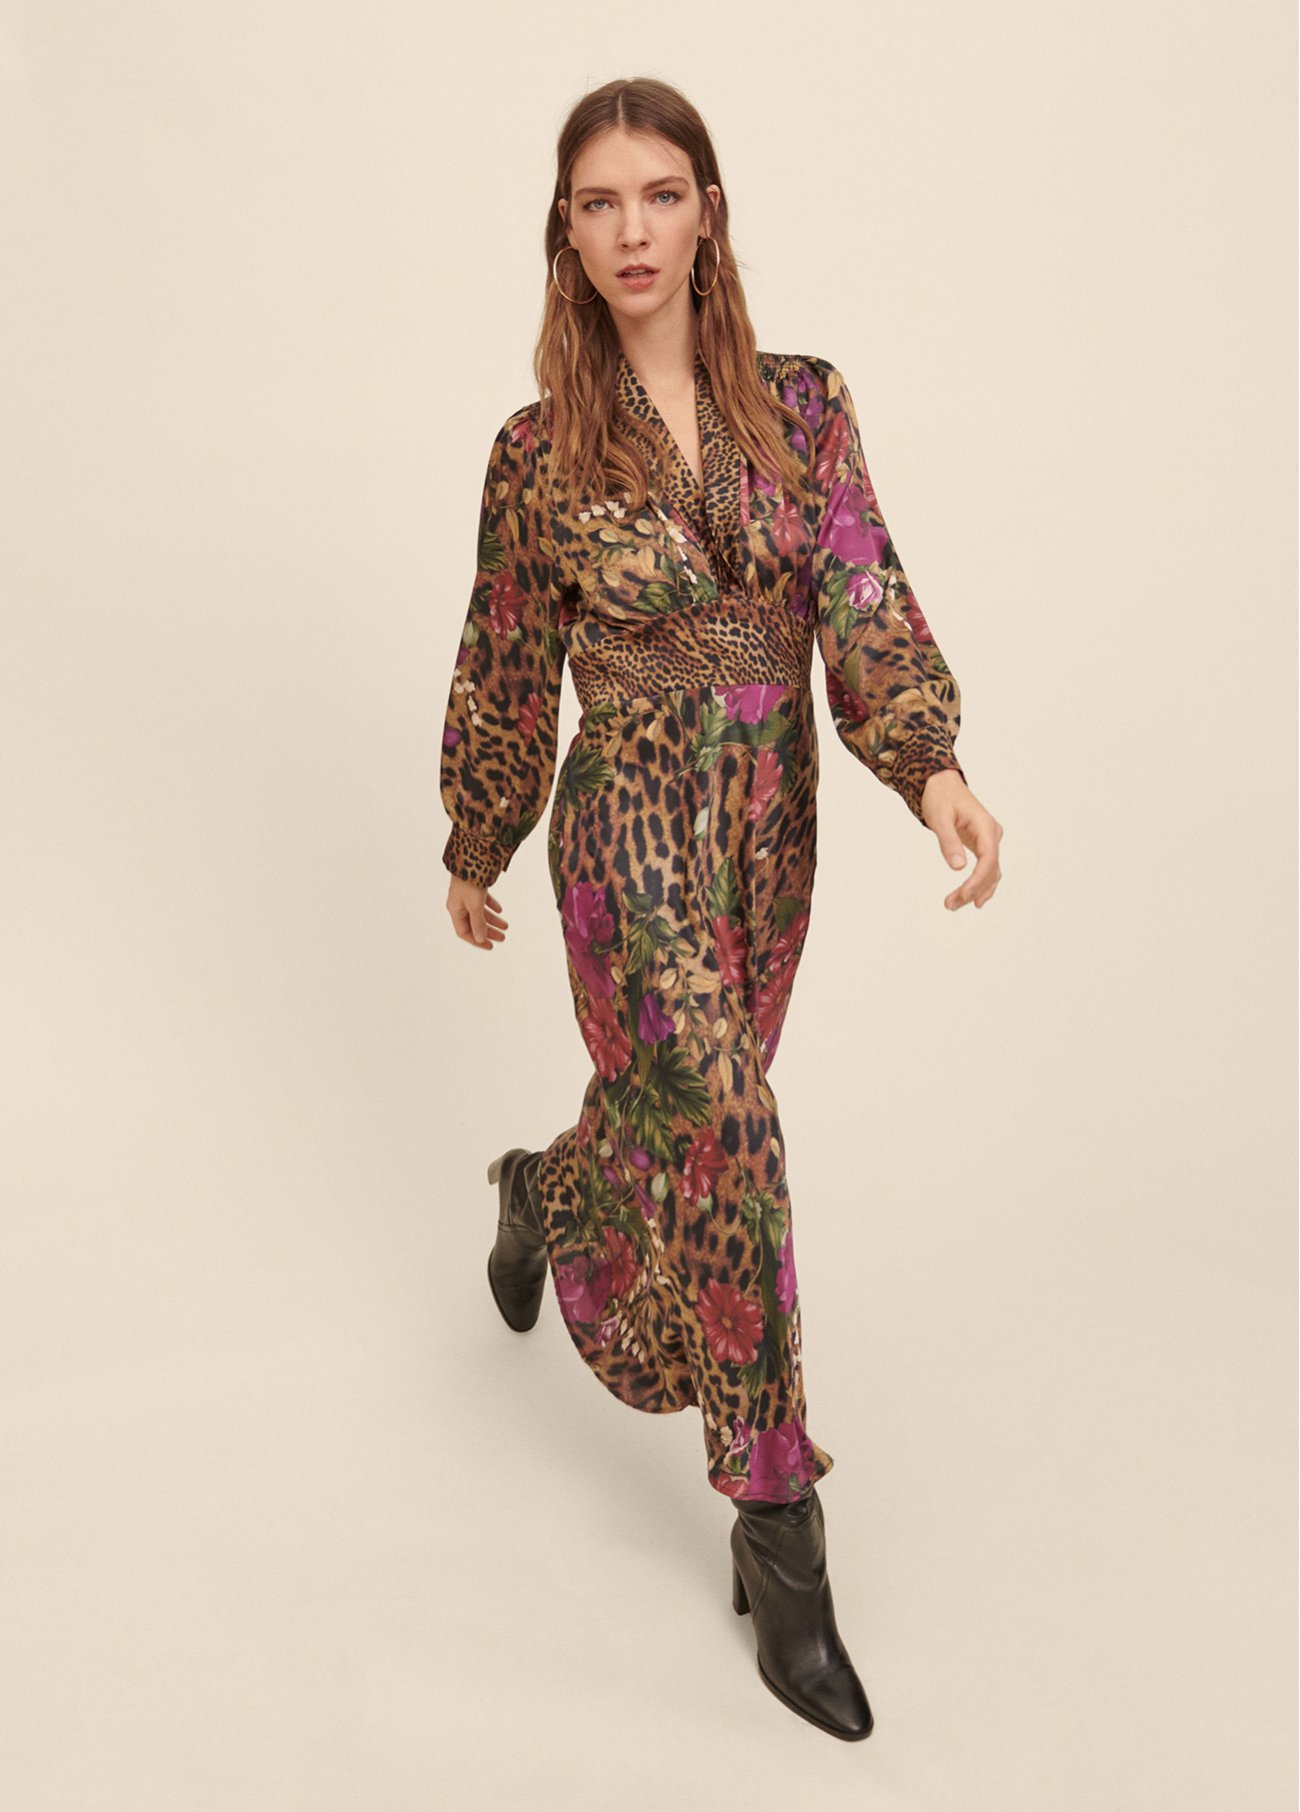 Dress with mixed prints